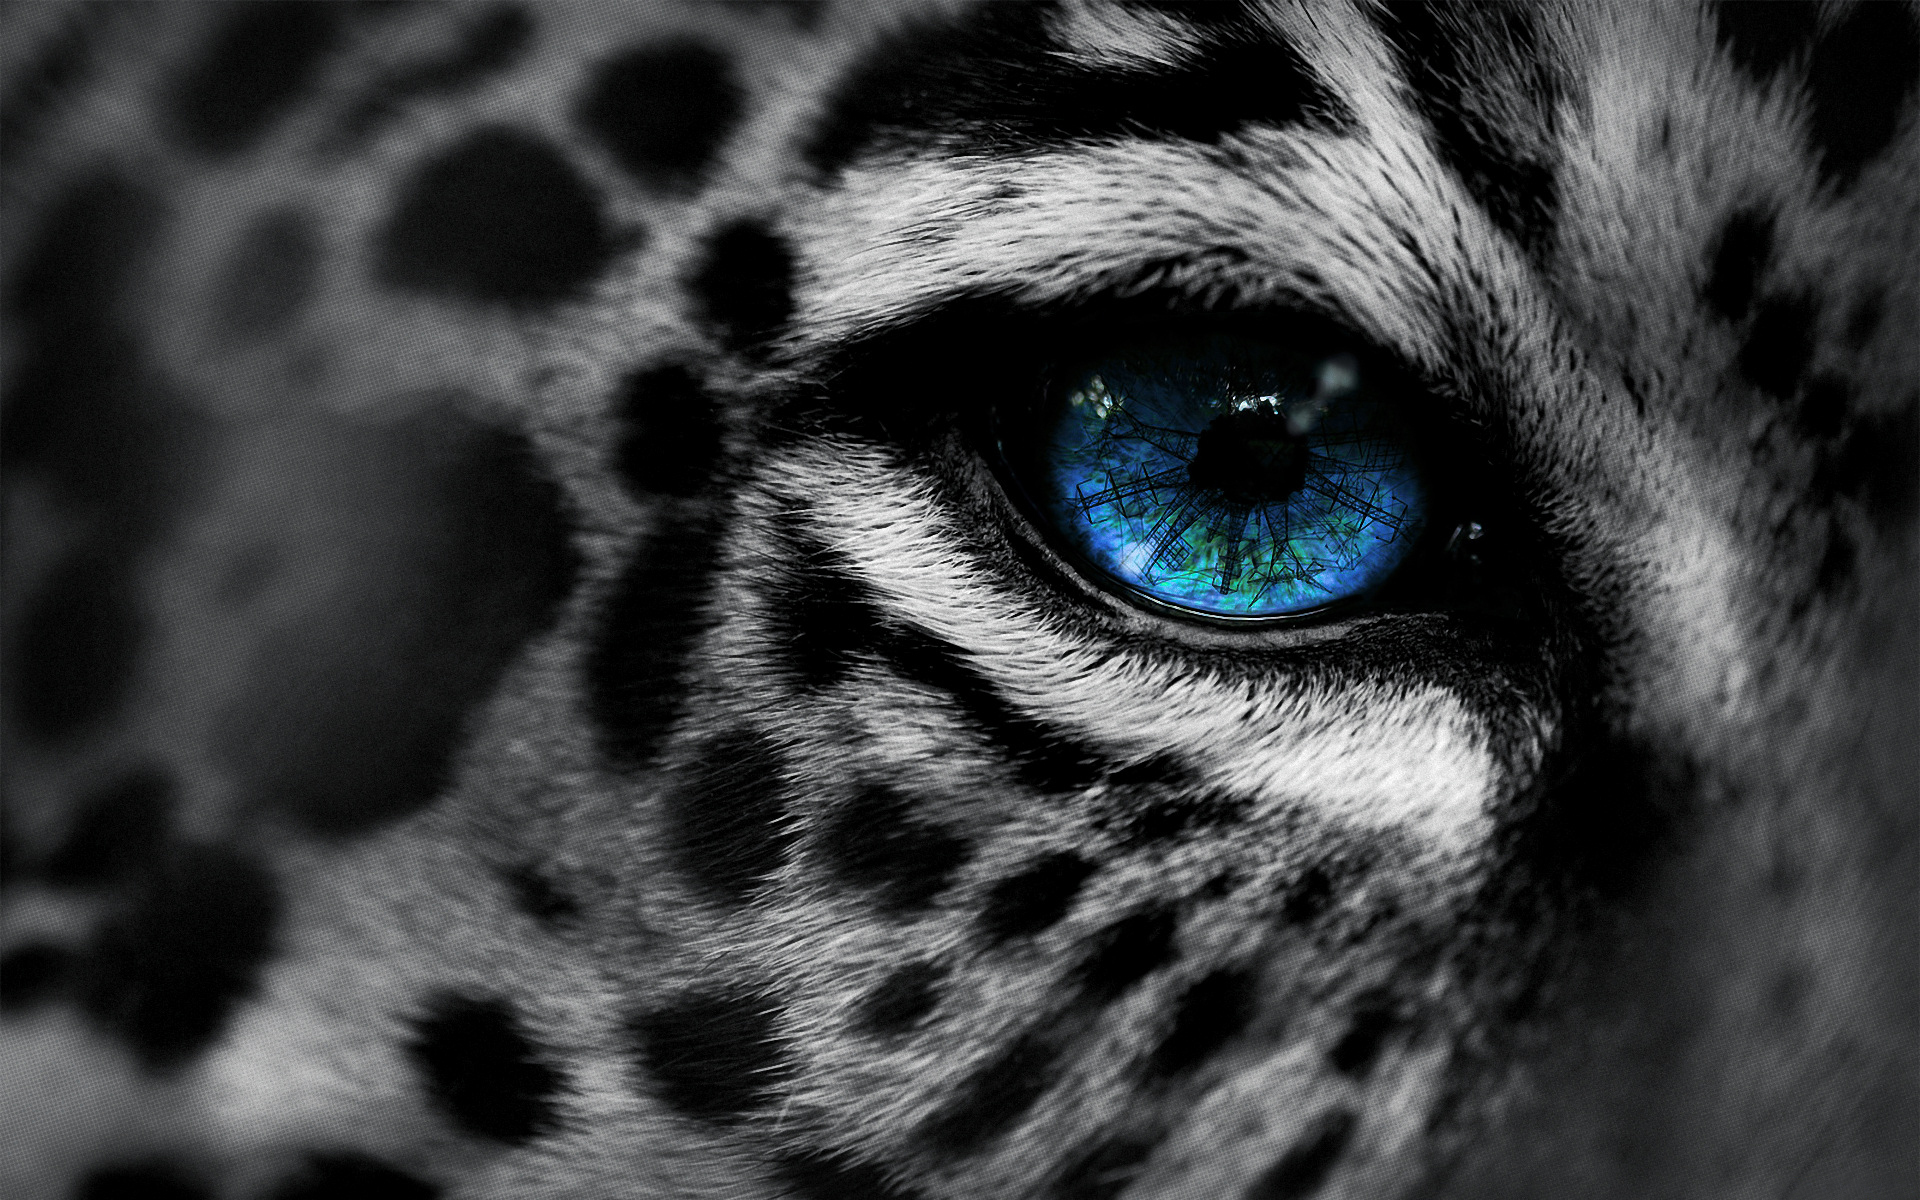 leopard wallpaper blue eyes - HD Desktop Wallpapers 4k HD